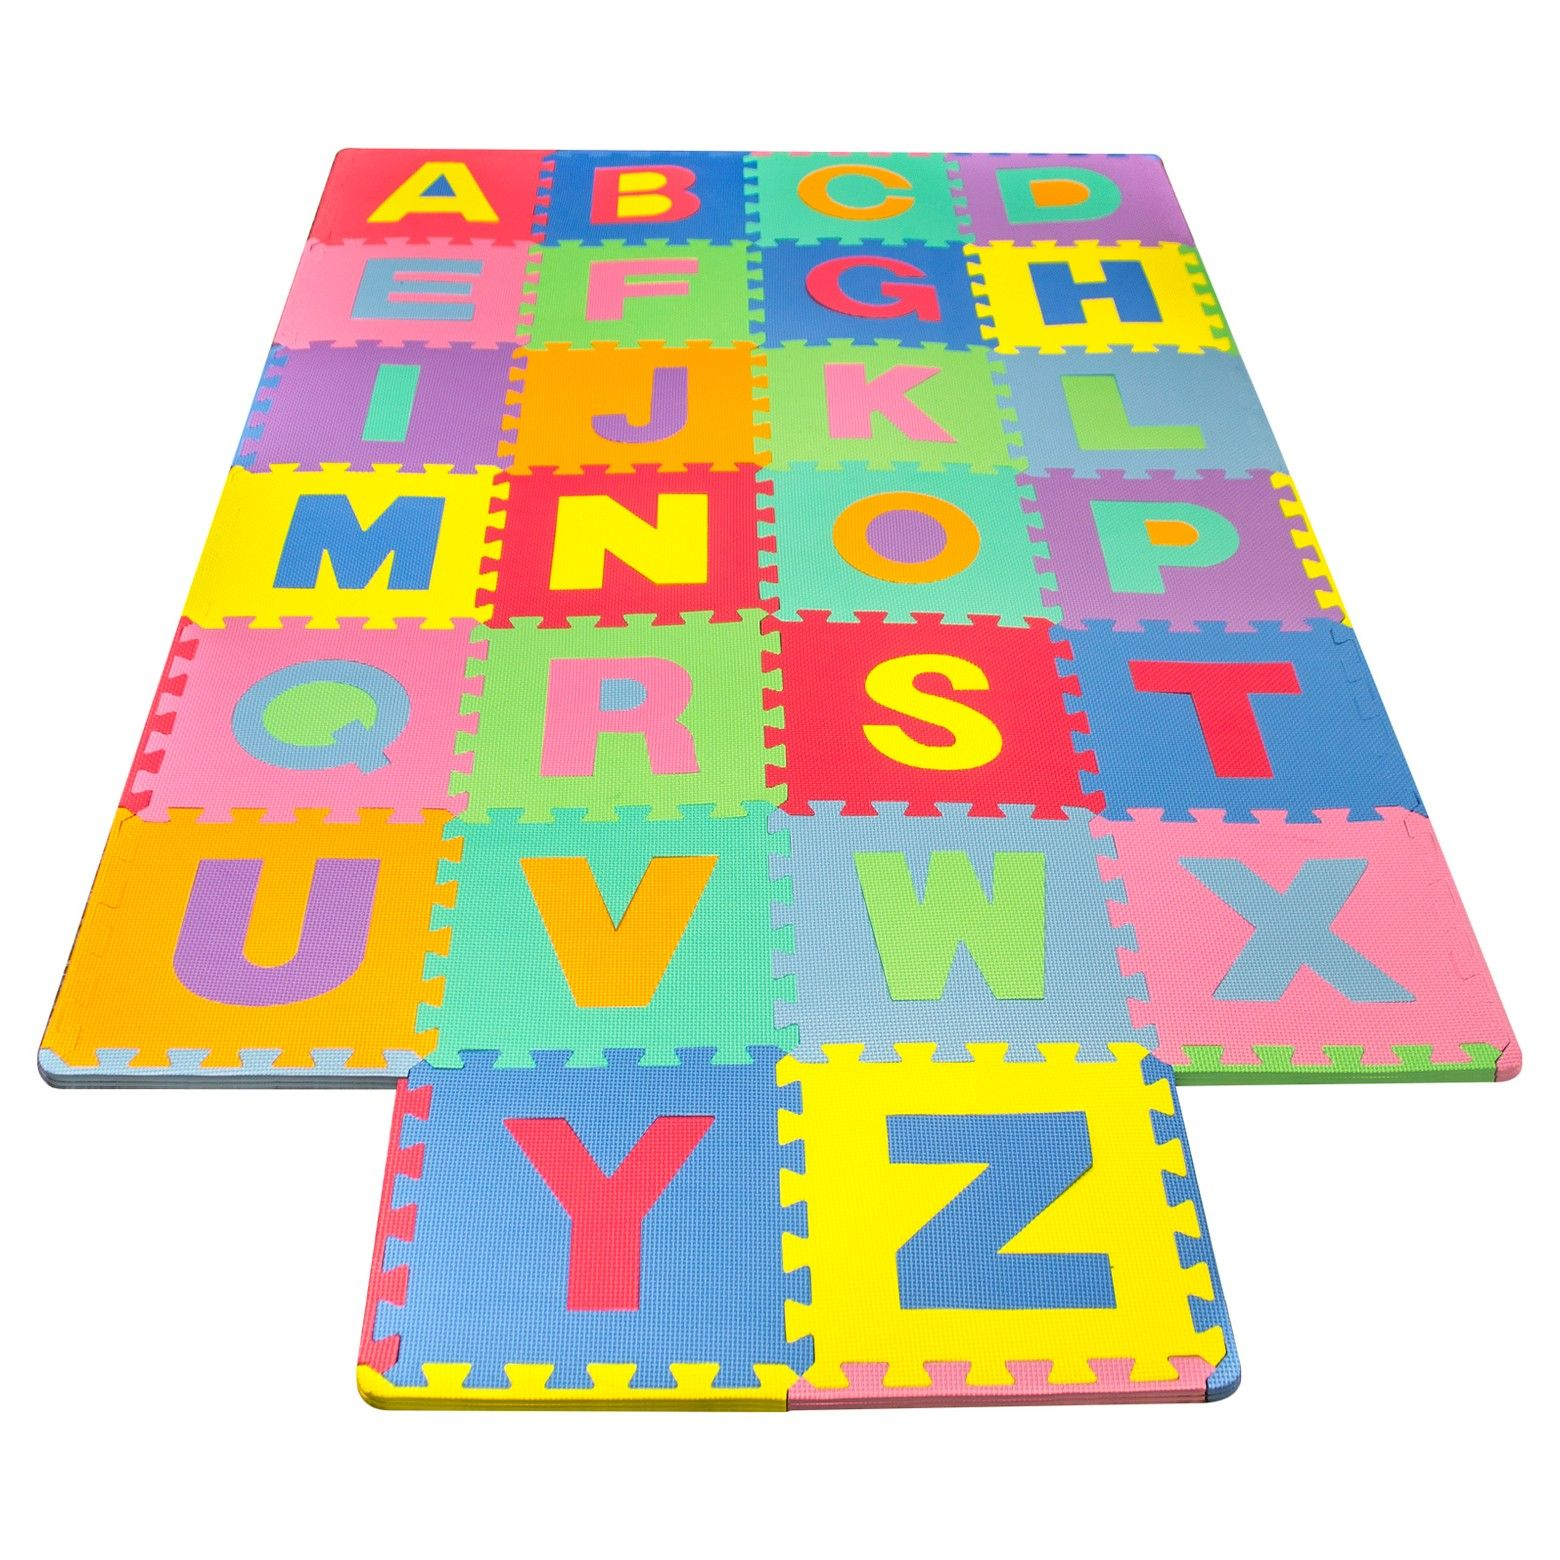 The Sorbus Matney Alphabet Foam Play Mat With 26 Tile Puzzle Pieces Makes A Great Surface Beneath Your Child During P Kids Foam Floor Puzzle Mat Foam Flooring